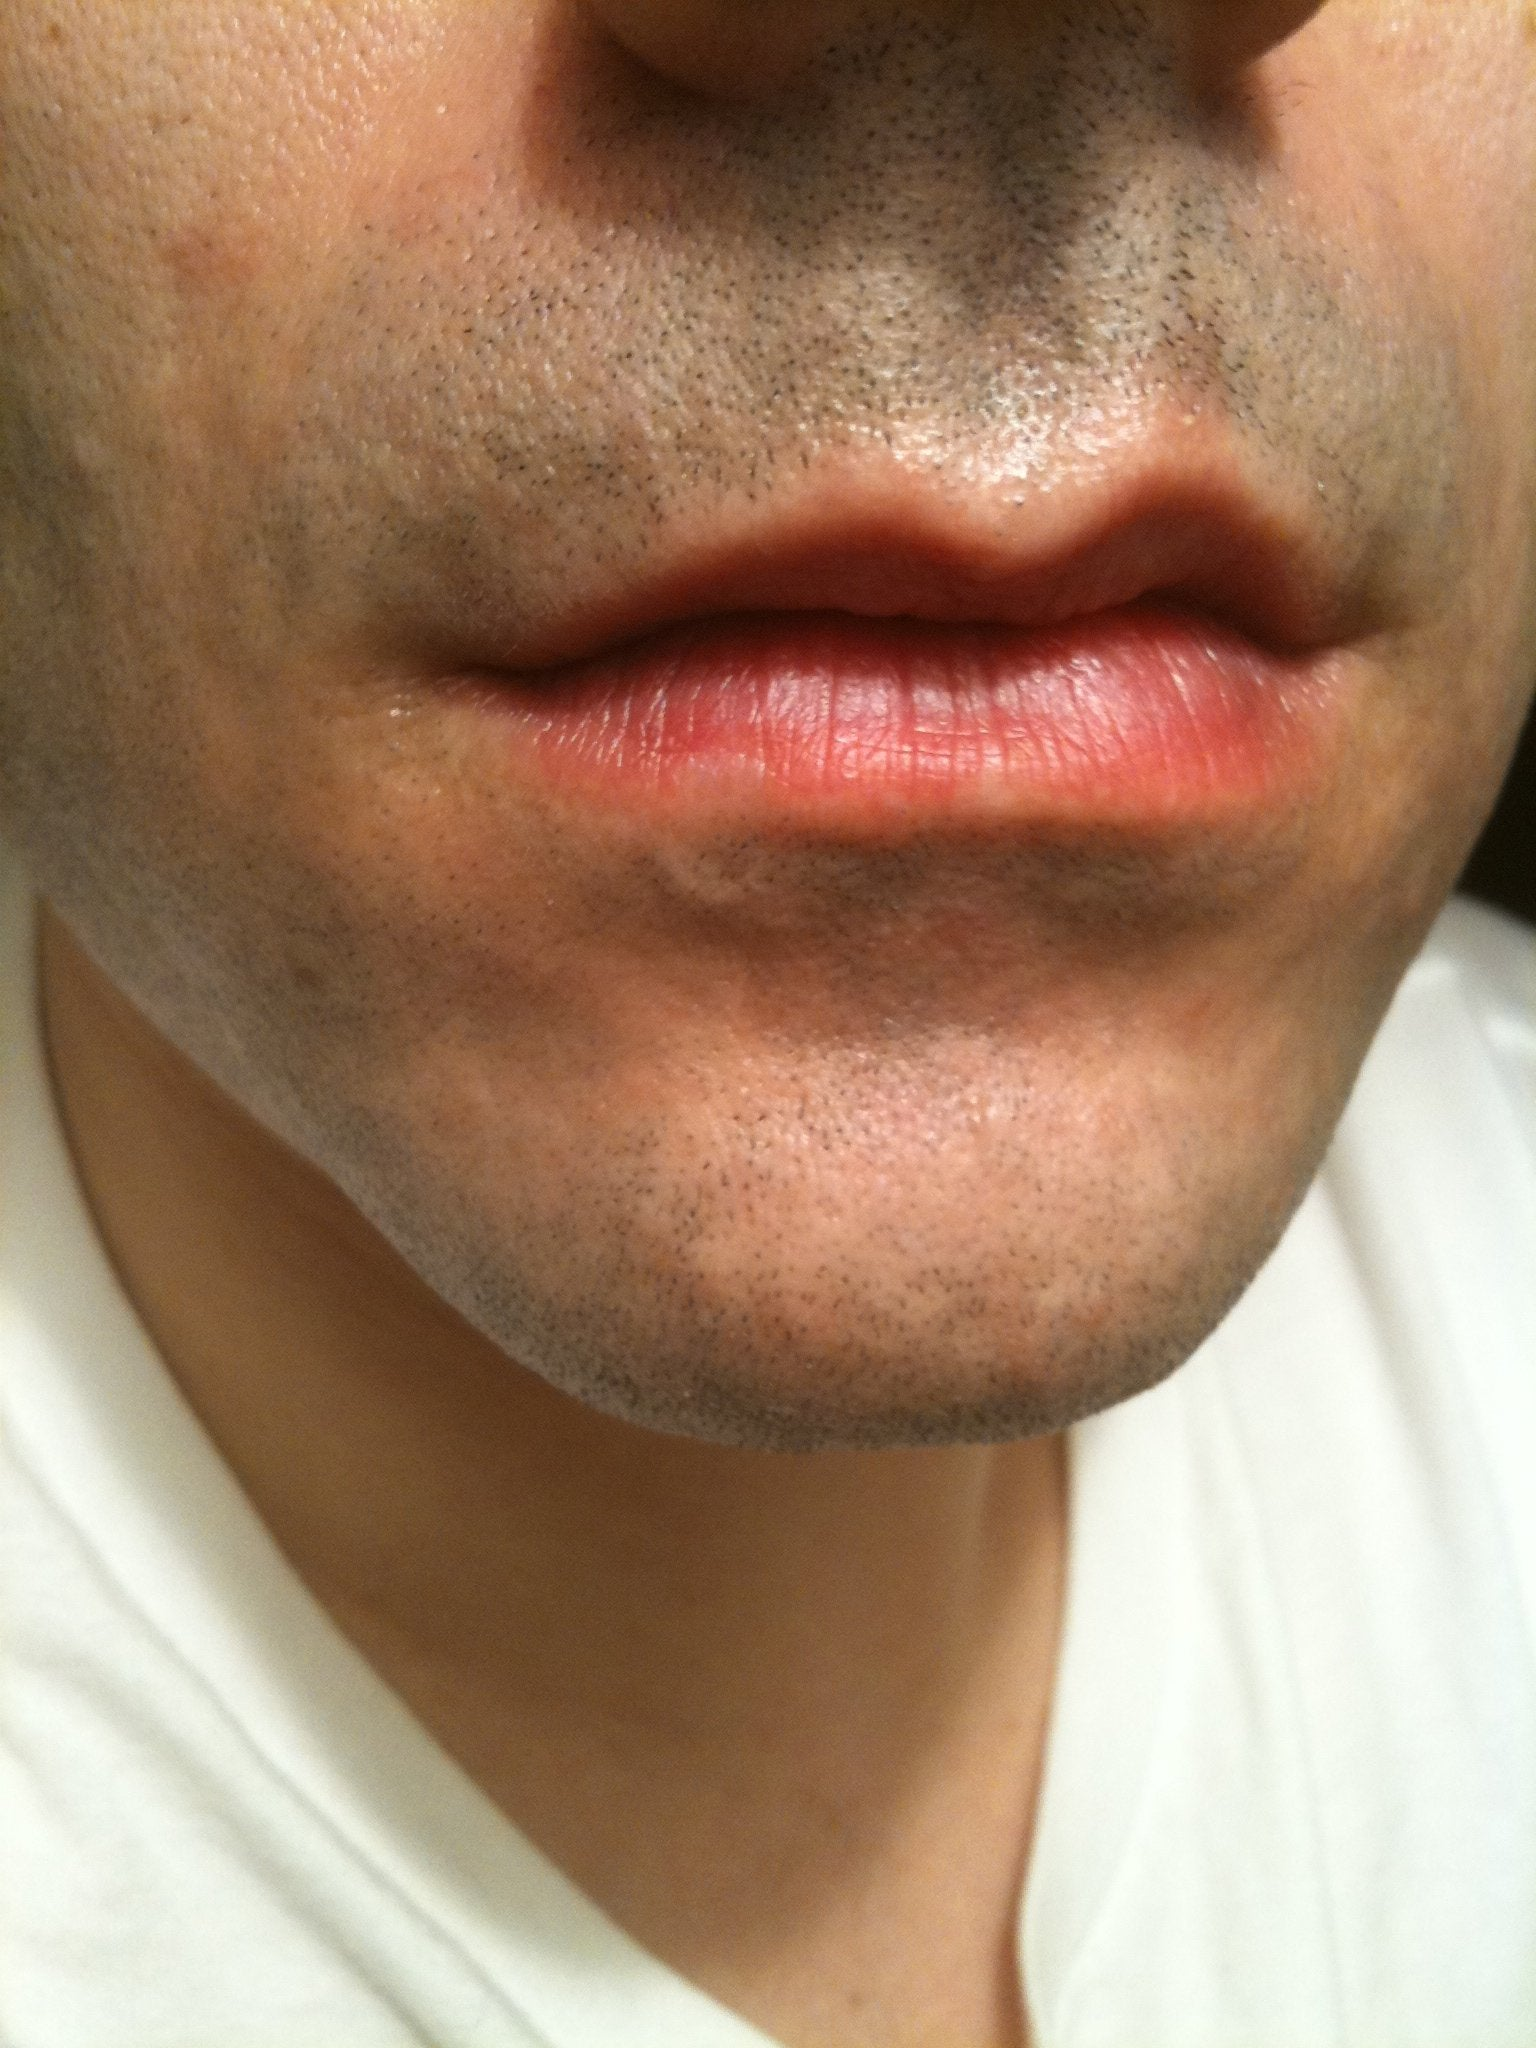 how to get herpes simplex cold sore